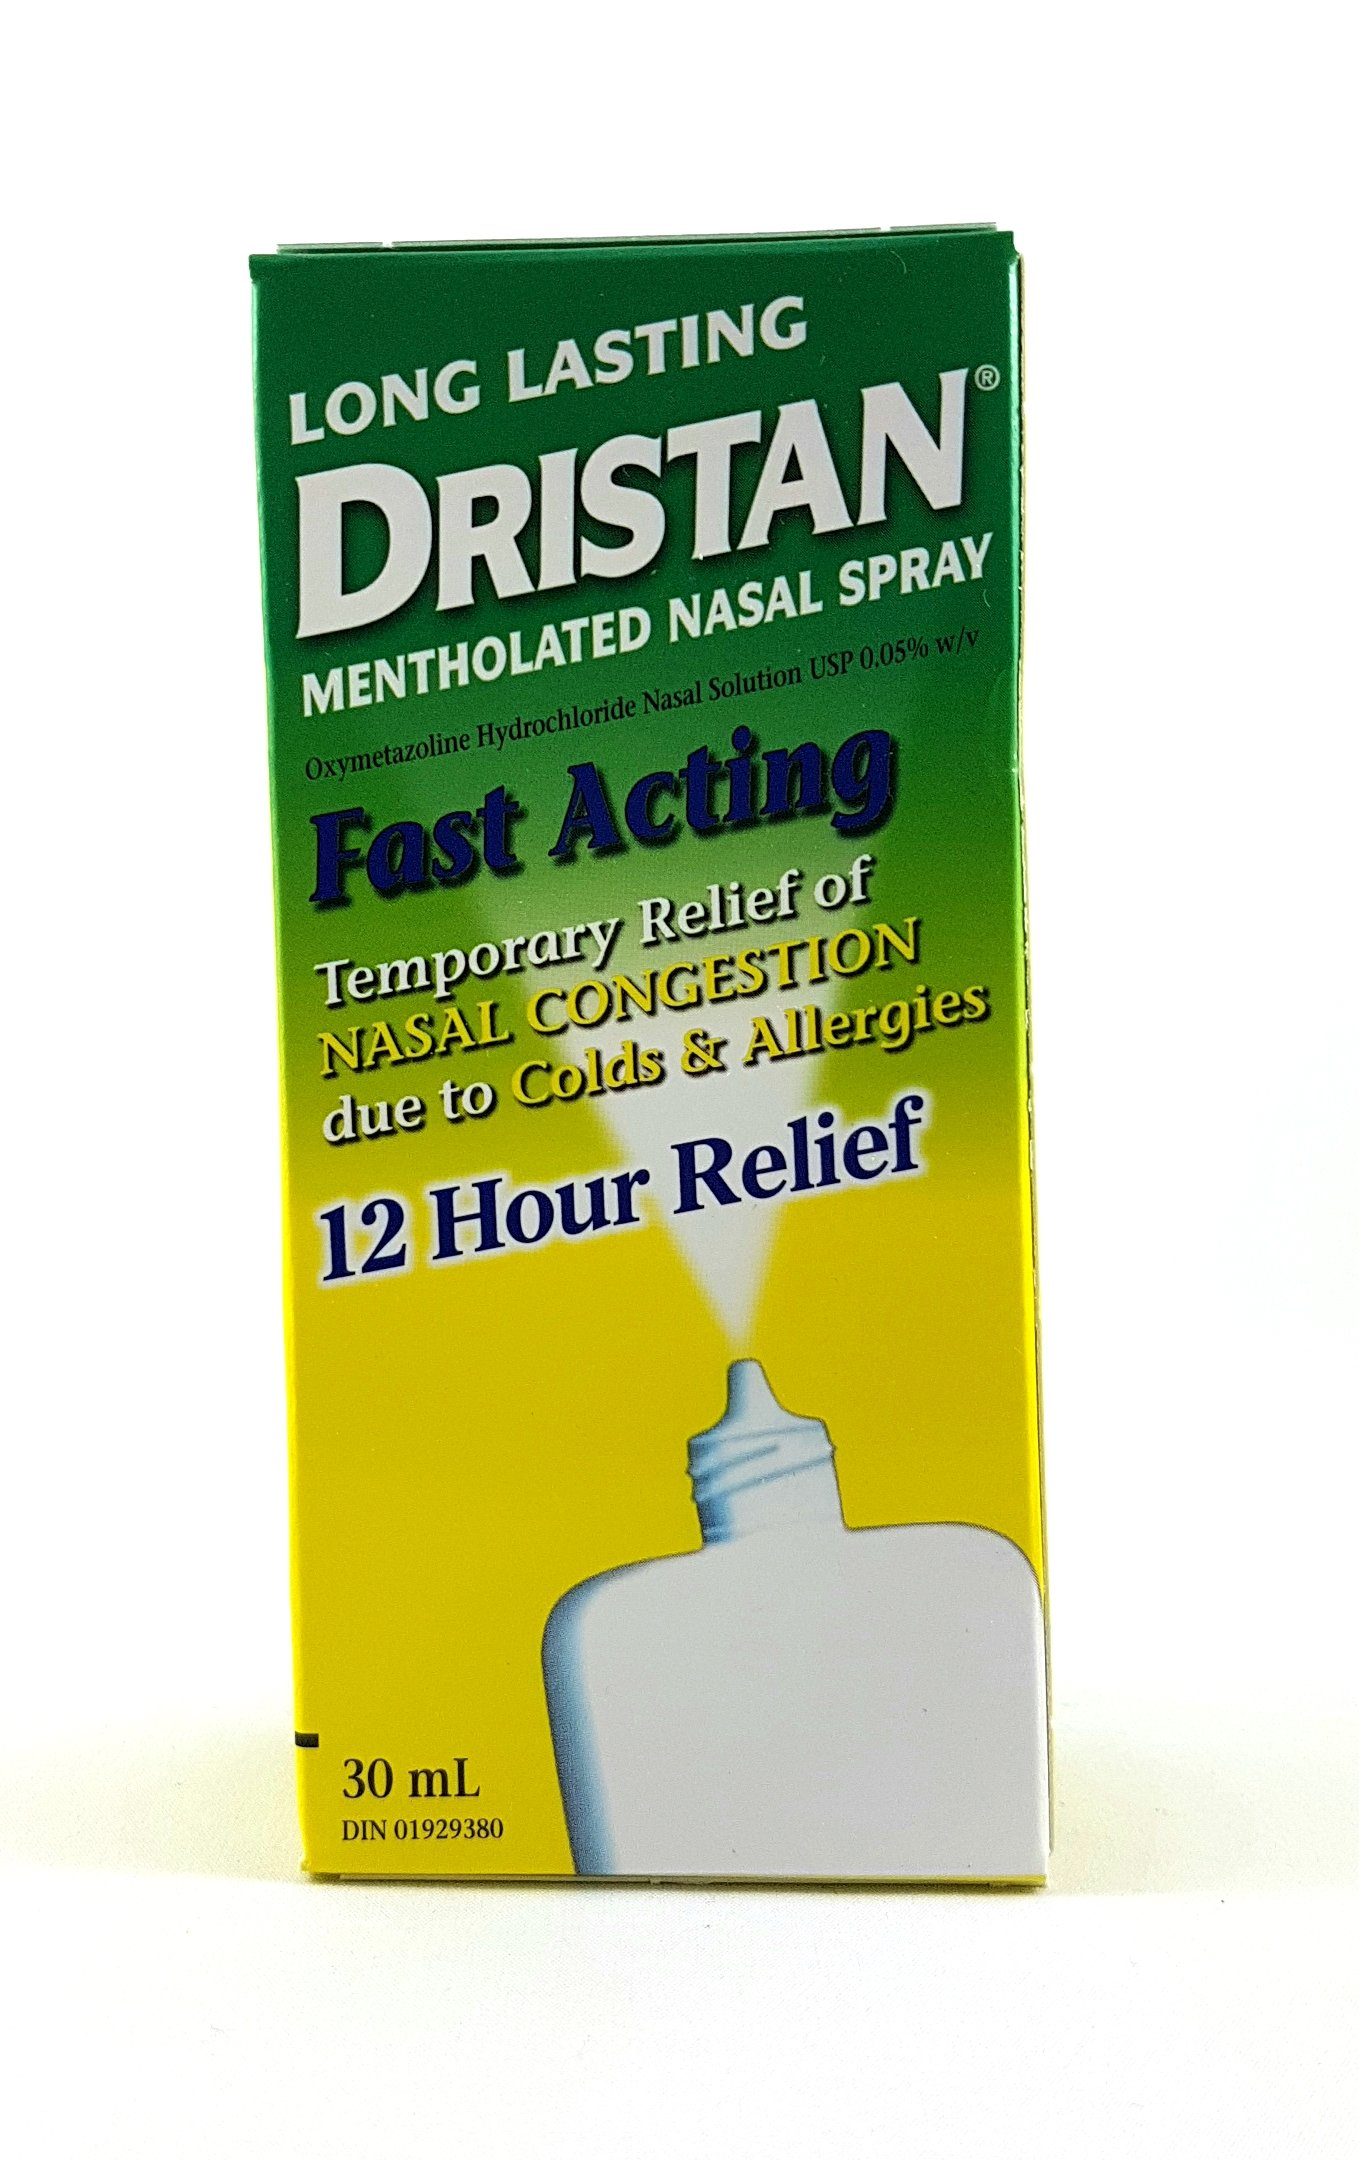 DRISTAN MENTHOLATED NASAL SPRAY LARGE 1oz SIZE